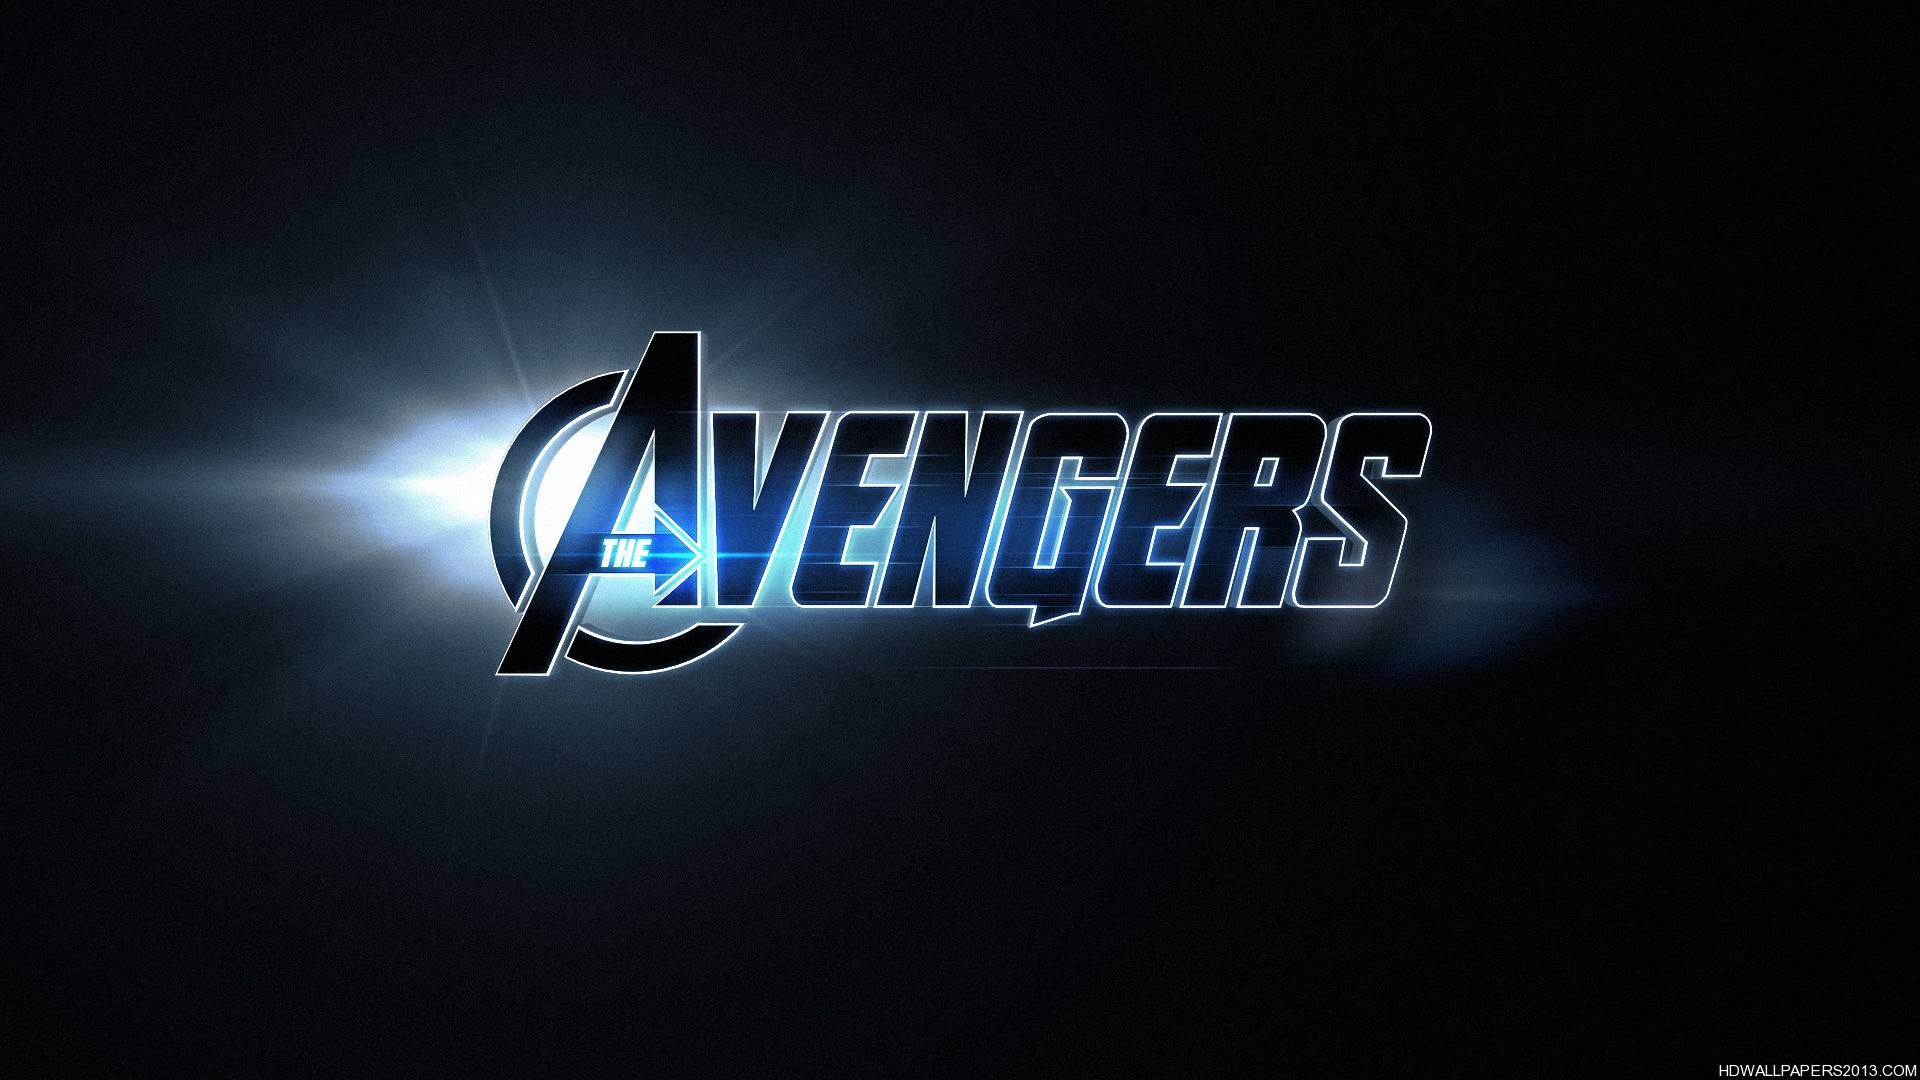 avengers comic logo wallpaper - photo #16